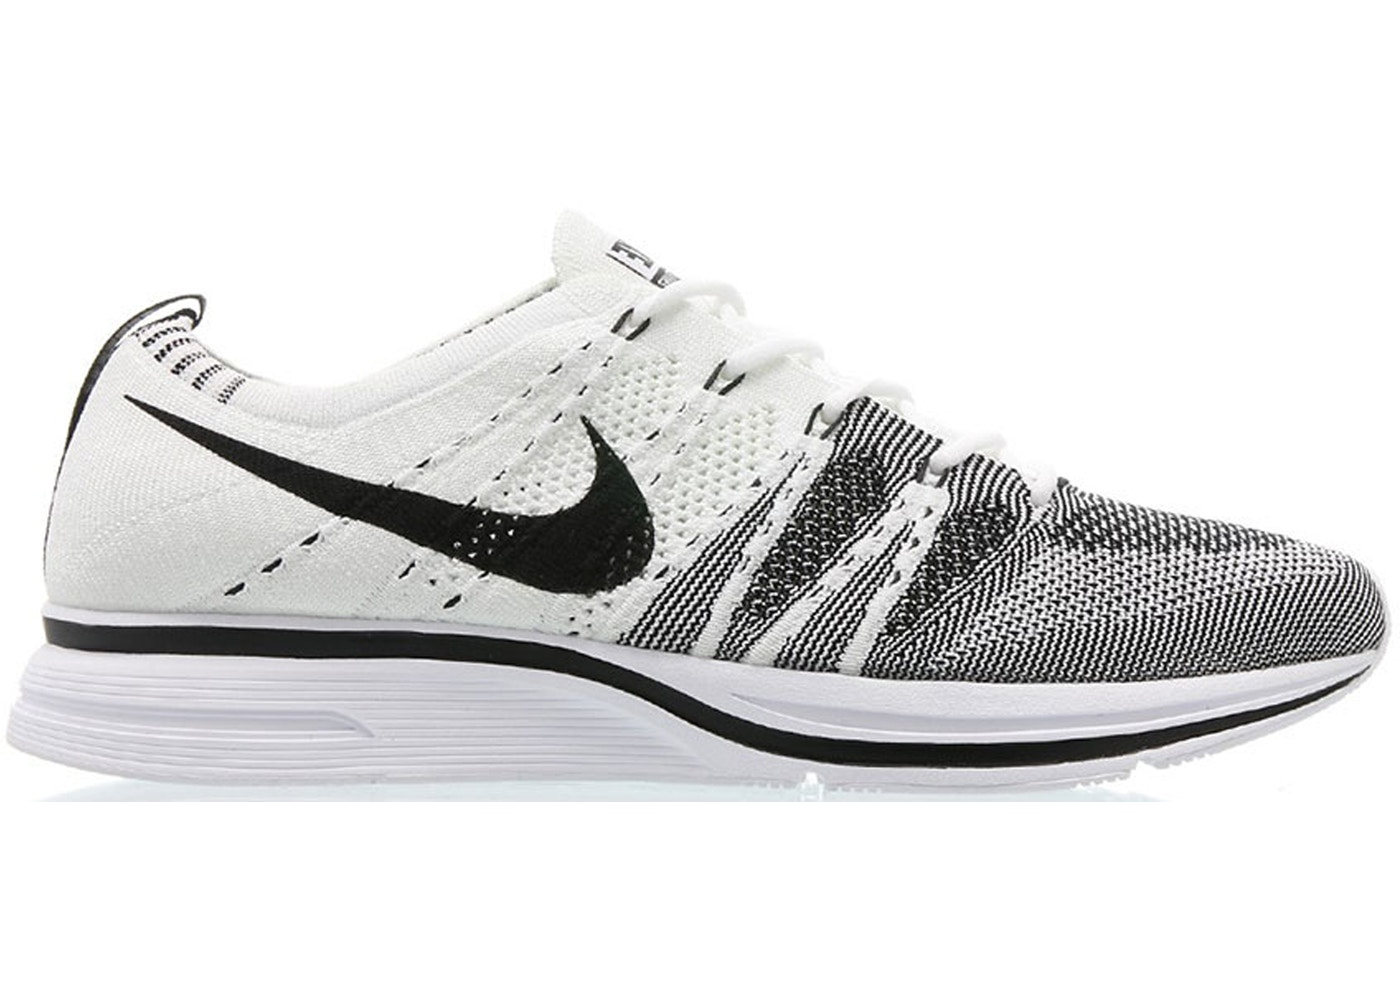 cheaper cdce9 8b63c Flyknit Trainer White Black (2017) - AH8396-100